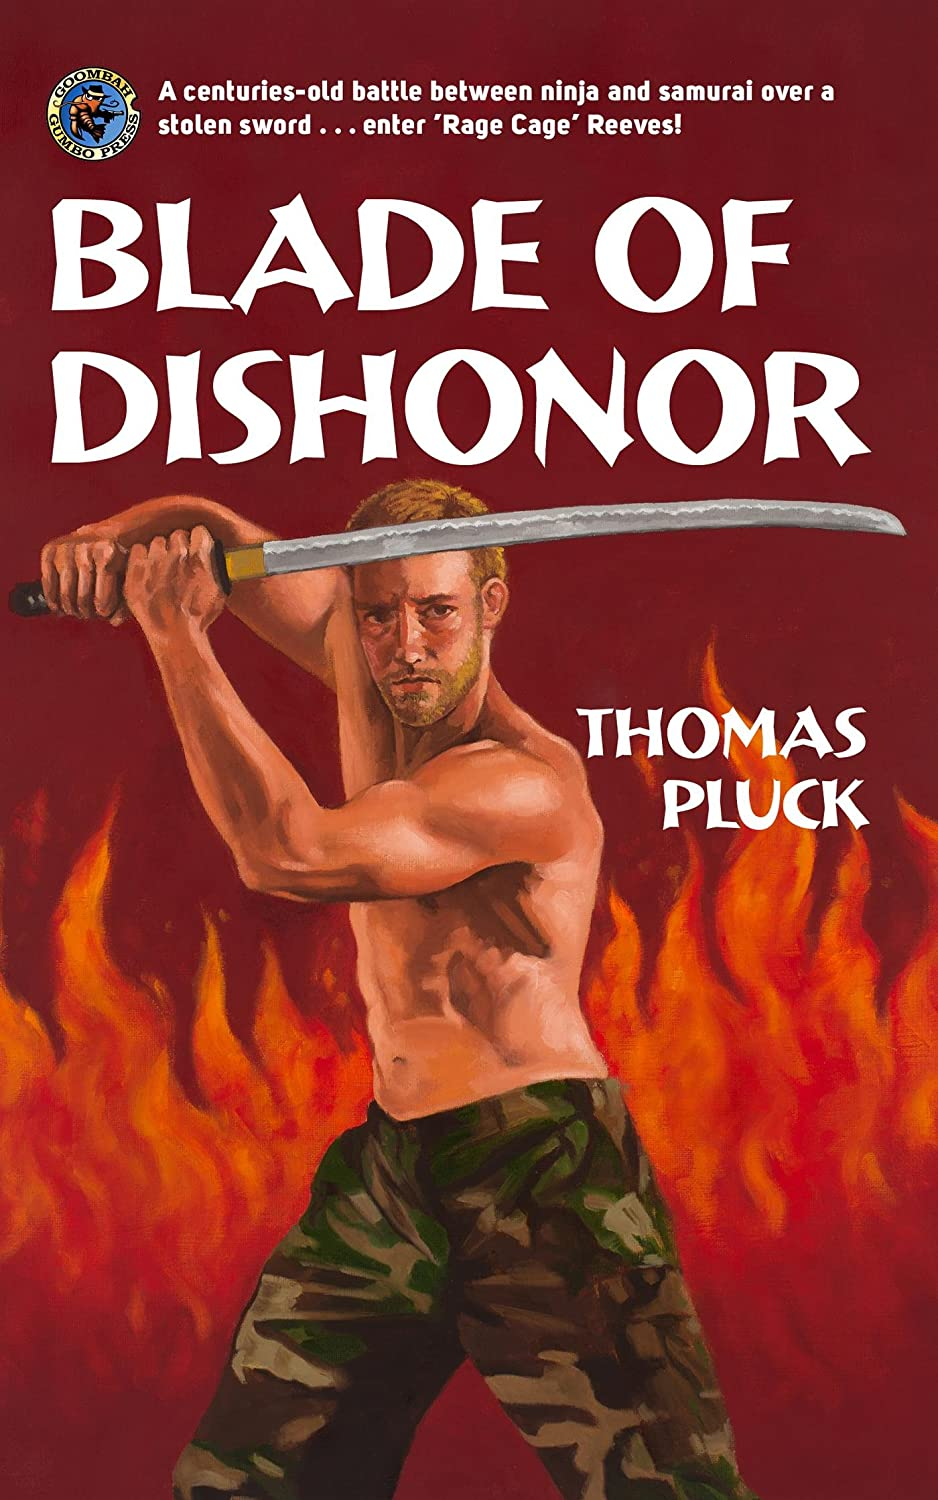 Blade of Dishonor (English Edition) eBook: Thomas Pluck ...